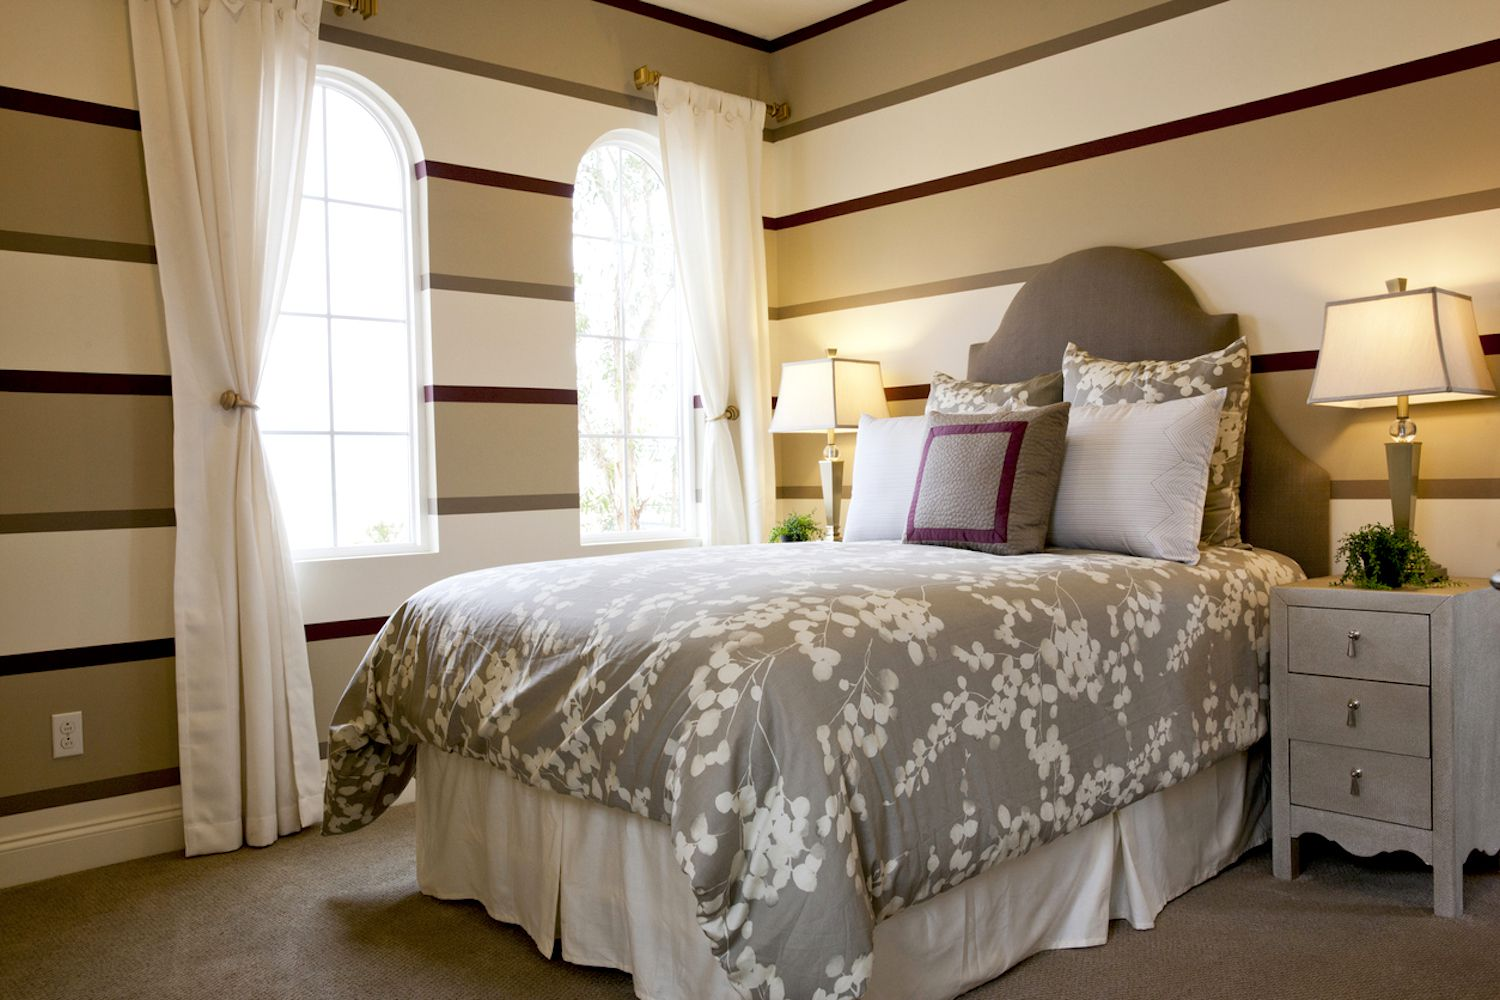 guest bedroom furniture.  How to Choose Bedroom Furniture for your Small Guest Room